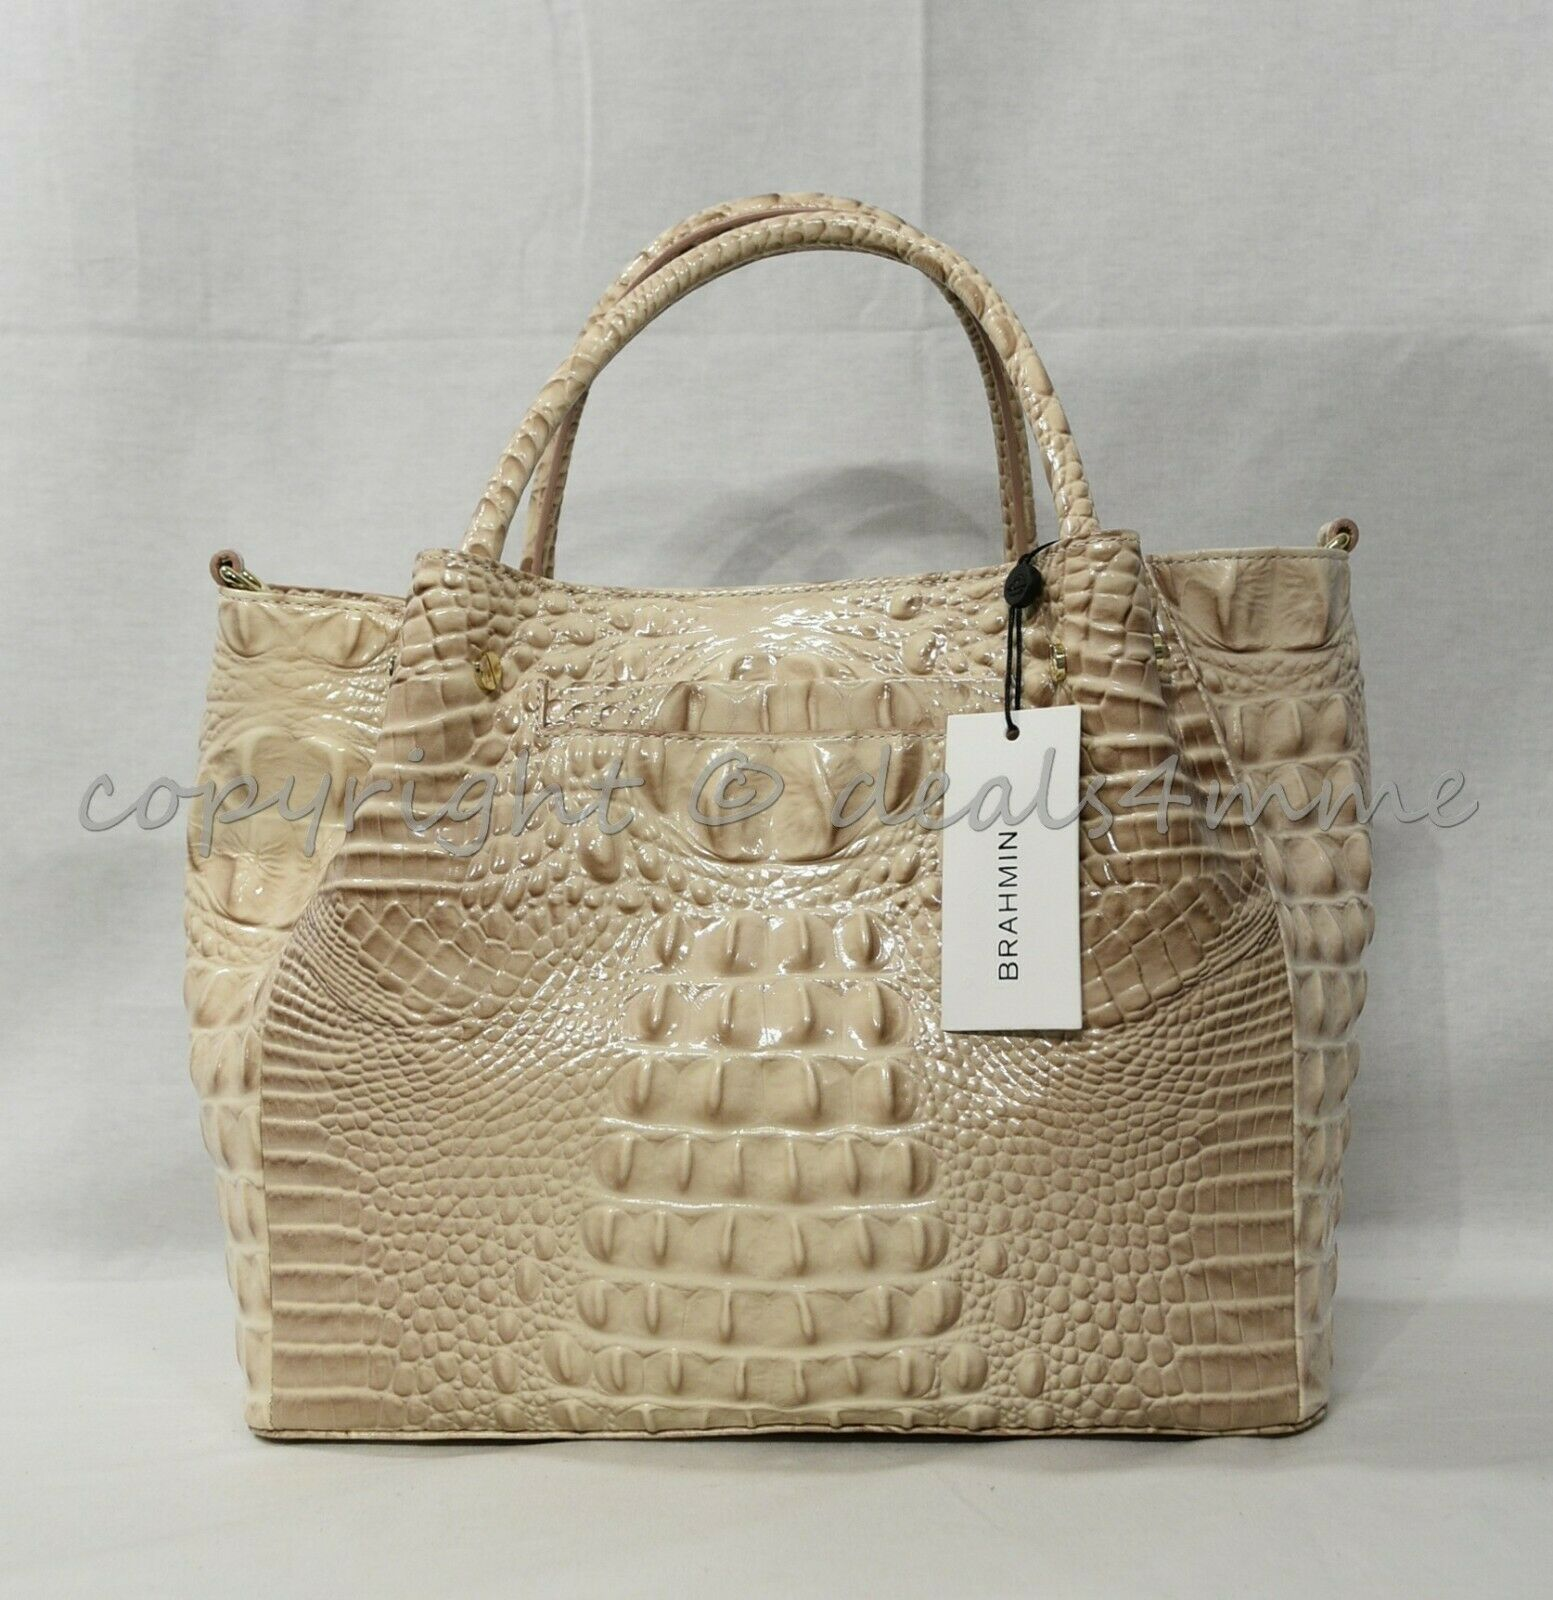 NWT Brahmin Small Mallory Leather Satchel/Shoulder Bag in Blossom Melbourne image 8